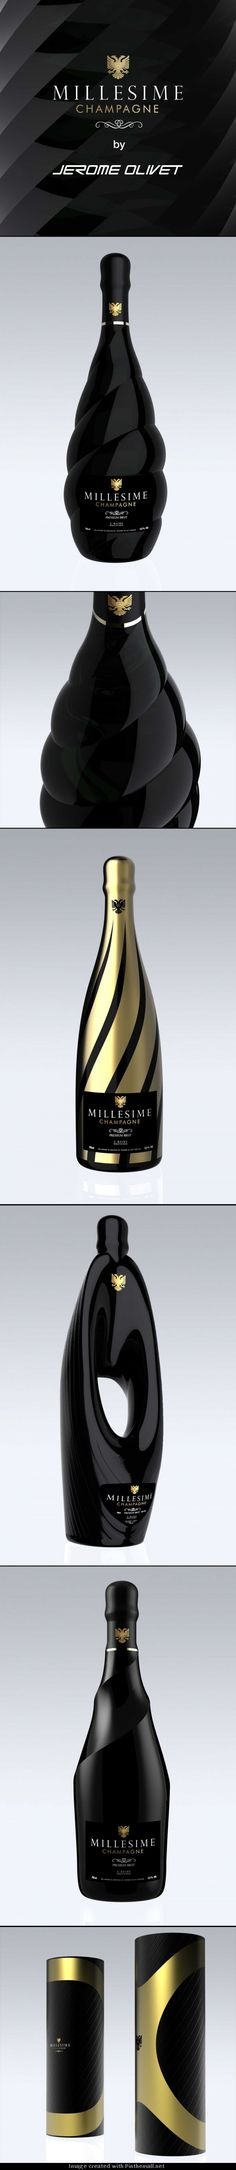 Millesime, exclusive champagne bottles with a futuristic design | designed by Jerome Olivet via Dieline PD